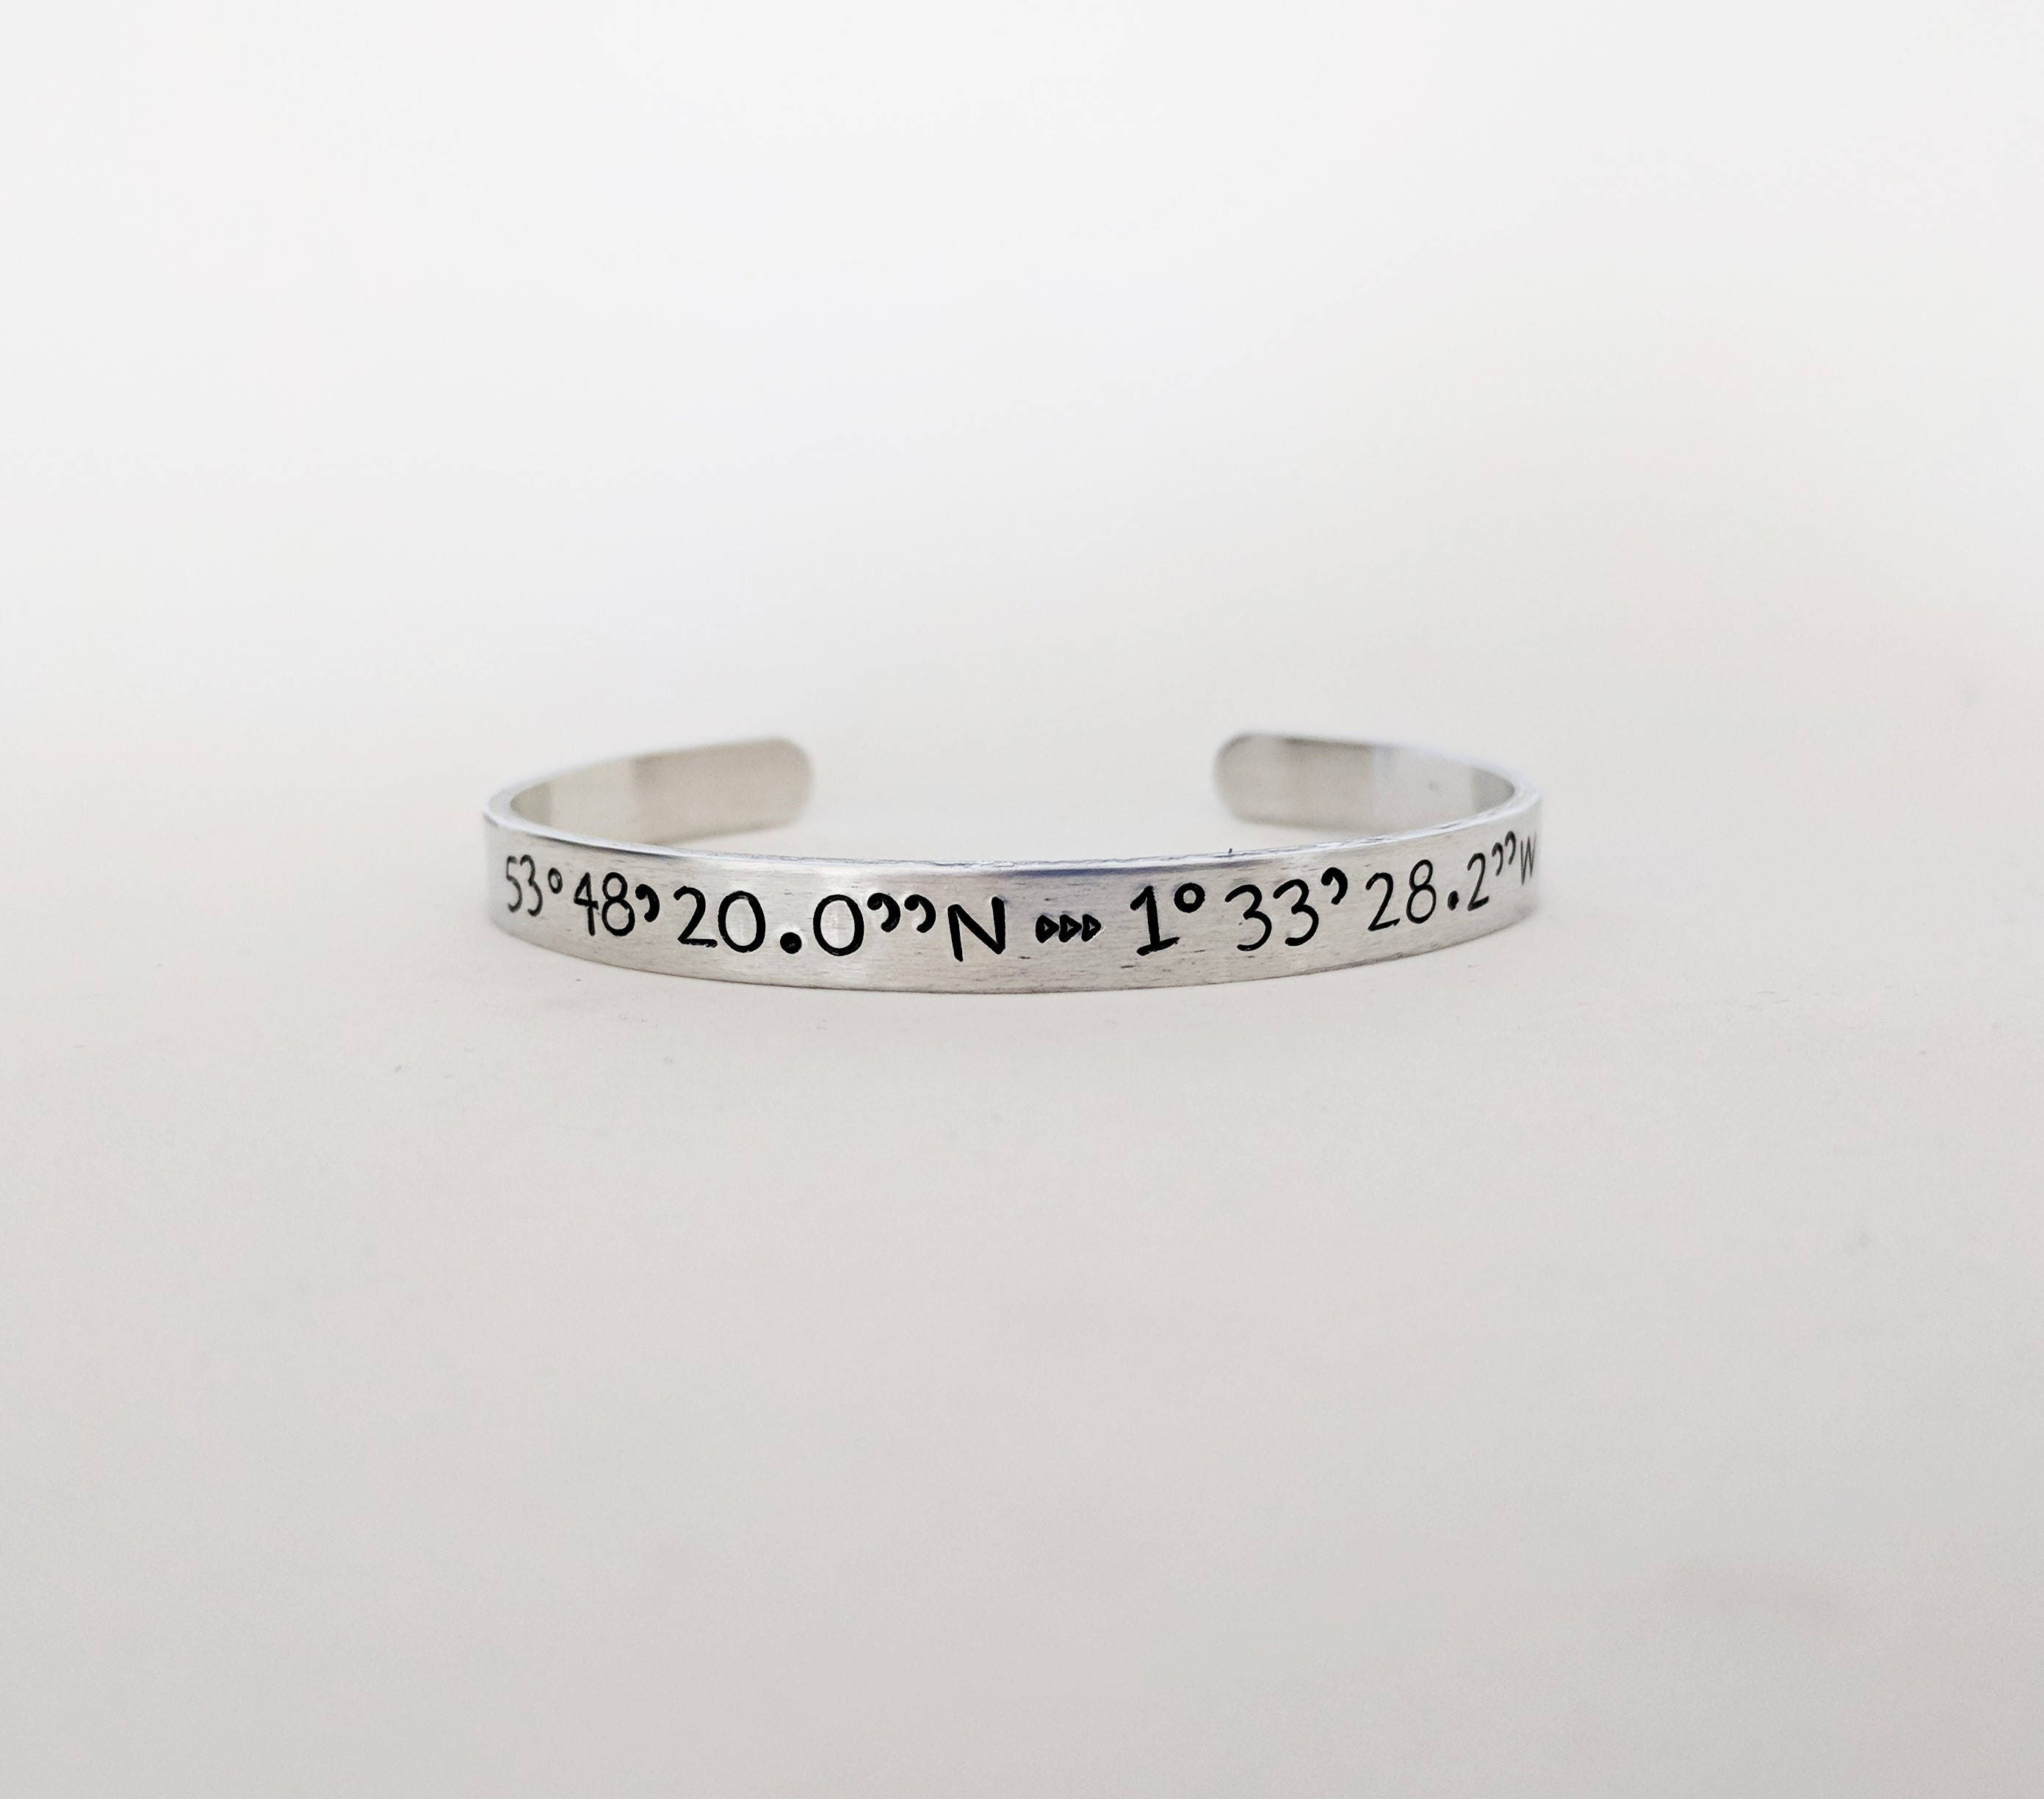 location jewelry compass latitude slxr gps silver listing coordinate bracelet longitude il fullxfull bangle